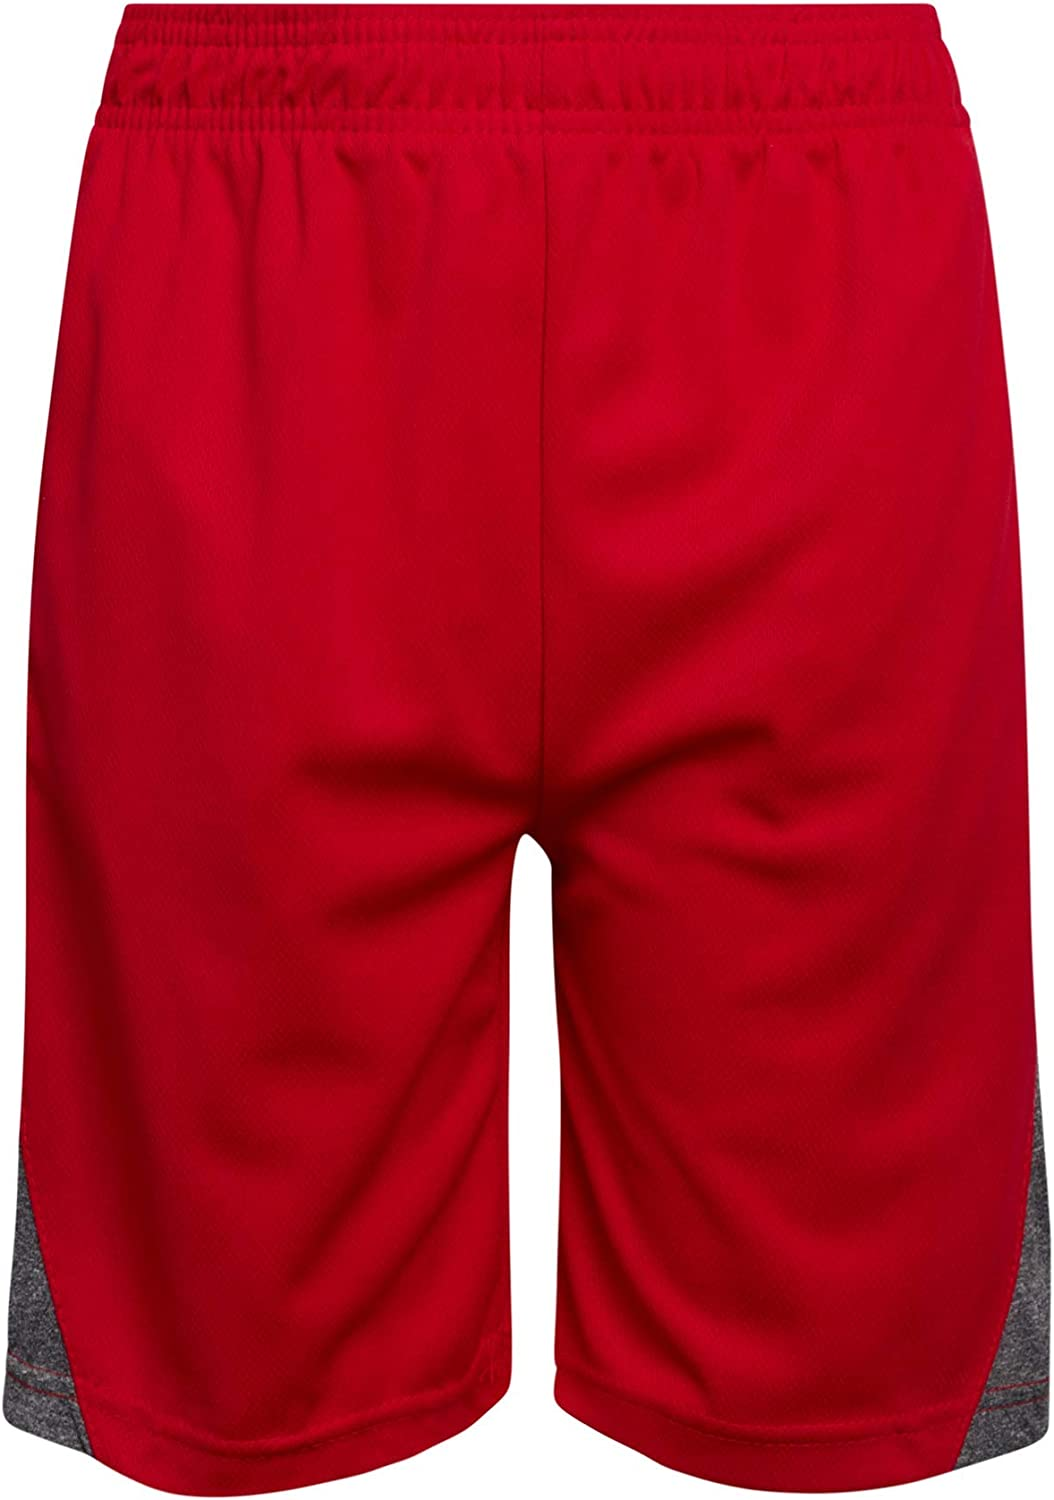 2 Pack Mad Game Boys Athletic Performance Basketball Shorts